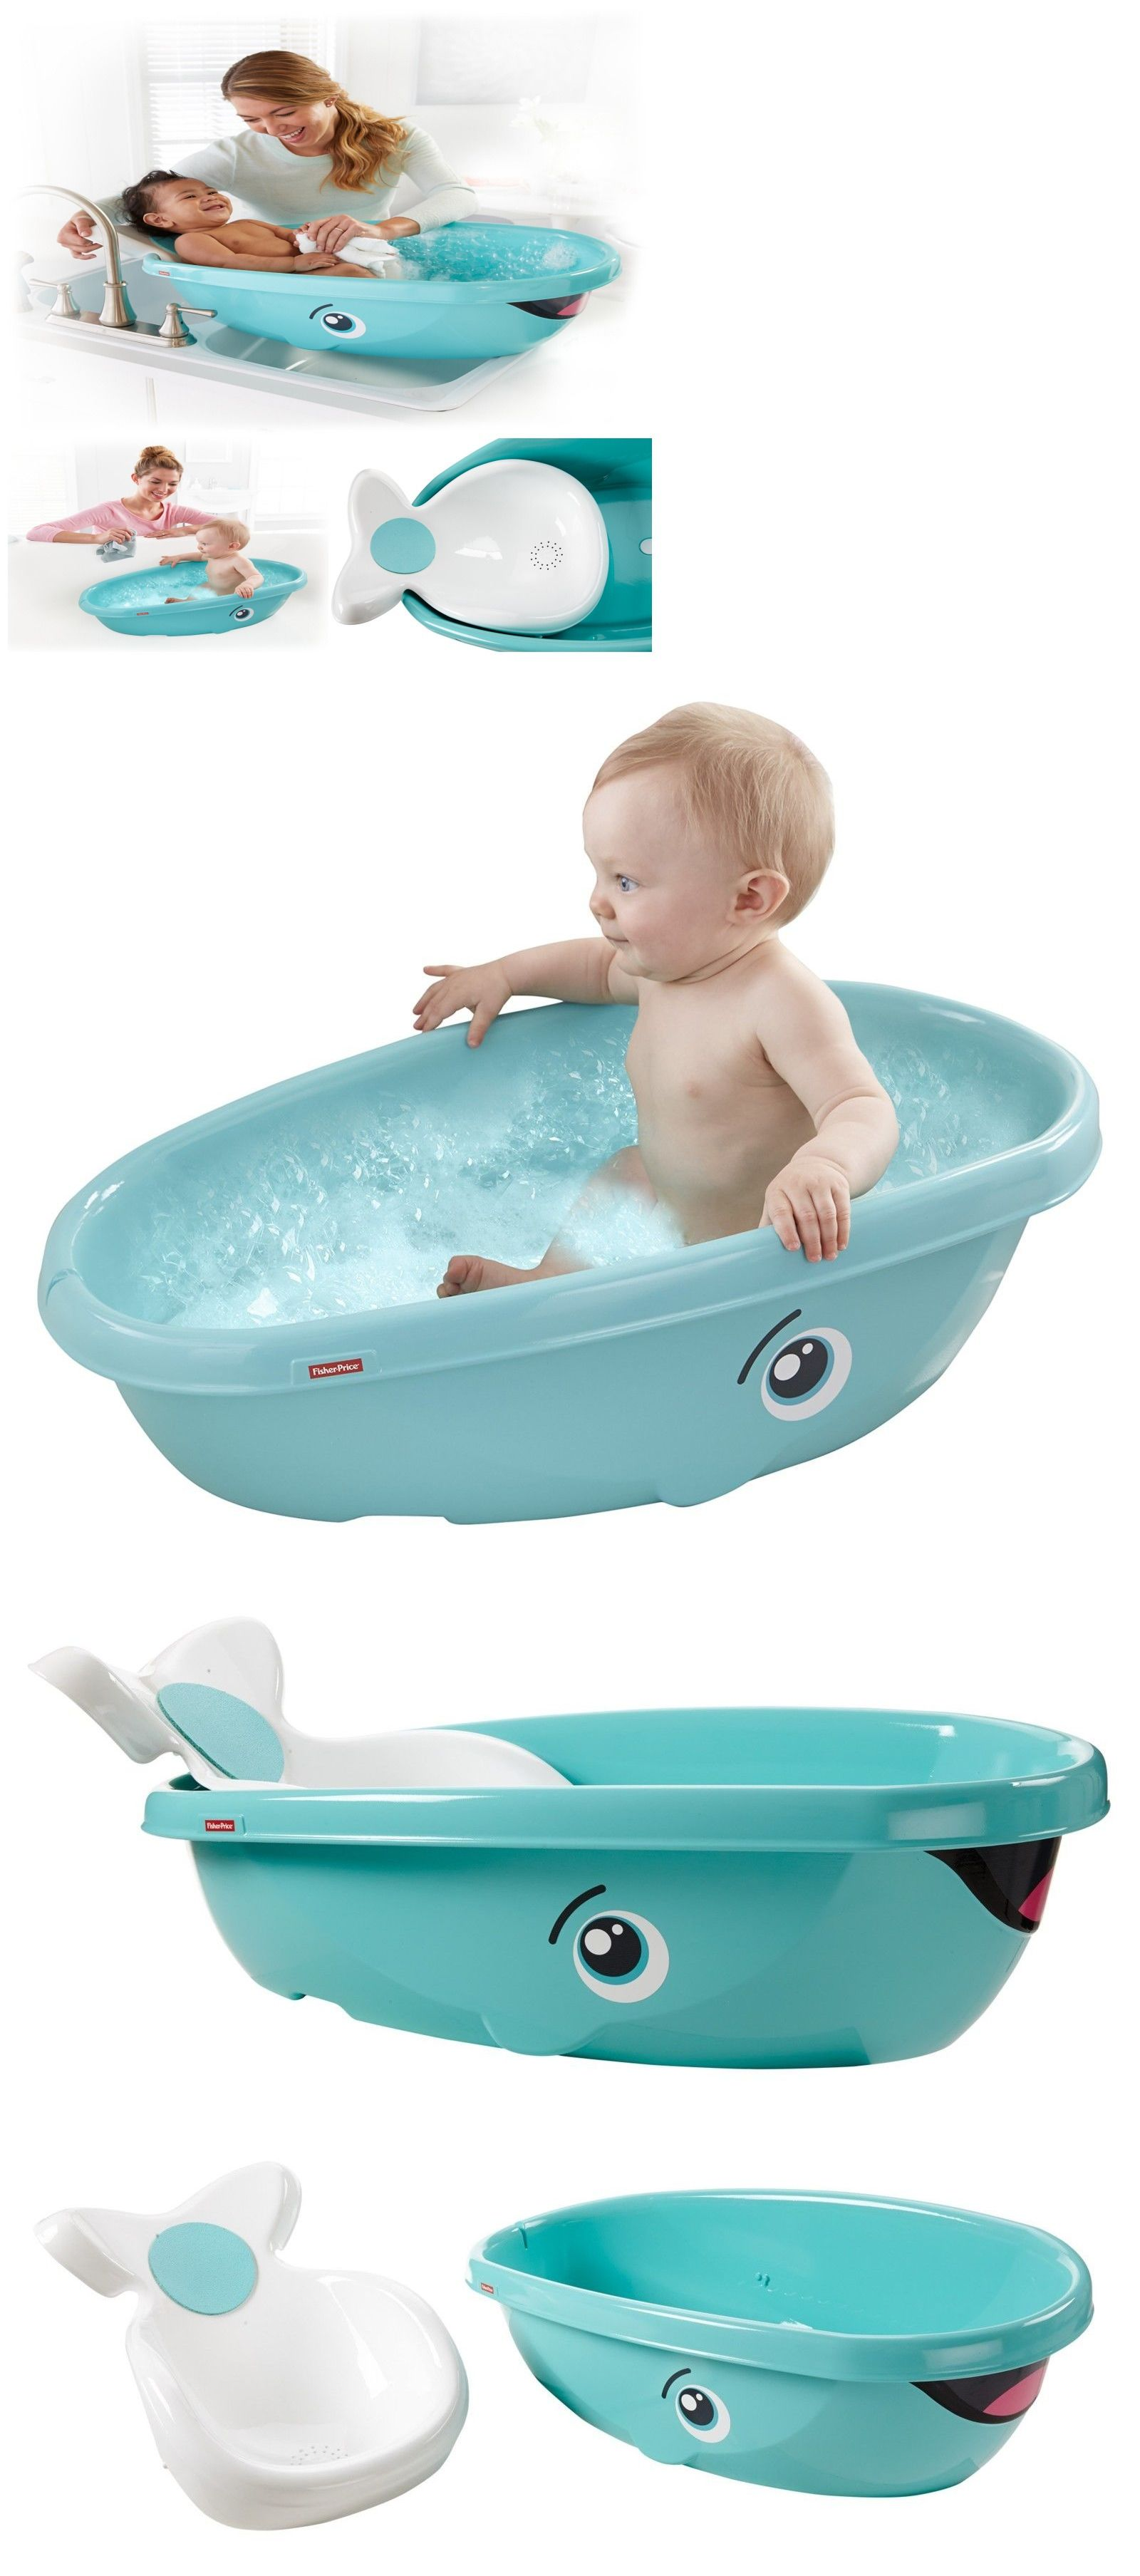 Baby Bathtub Whale Bath Tub Infant Newborn Bathing Shower Fisher Price |  MyKidSupplies